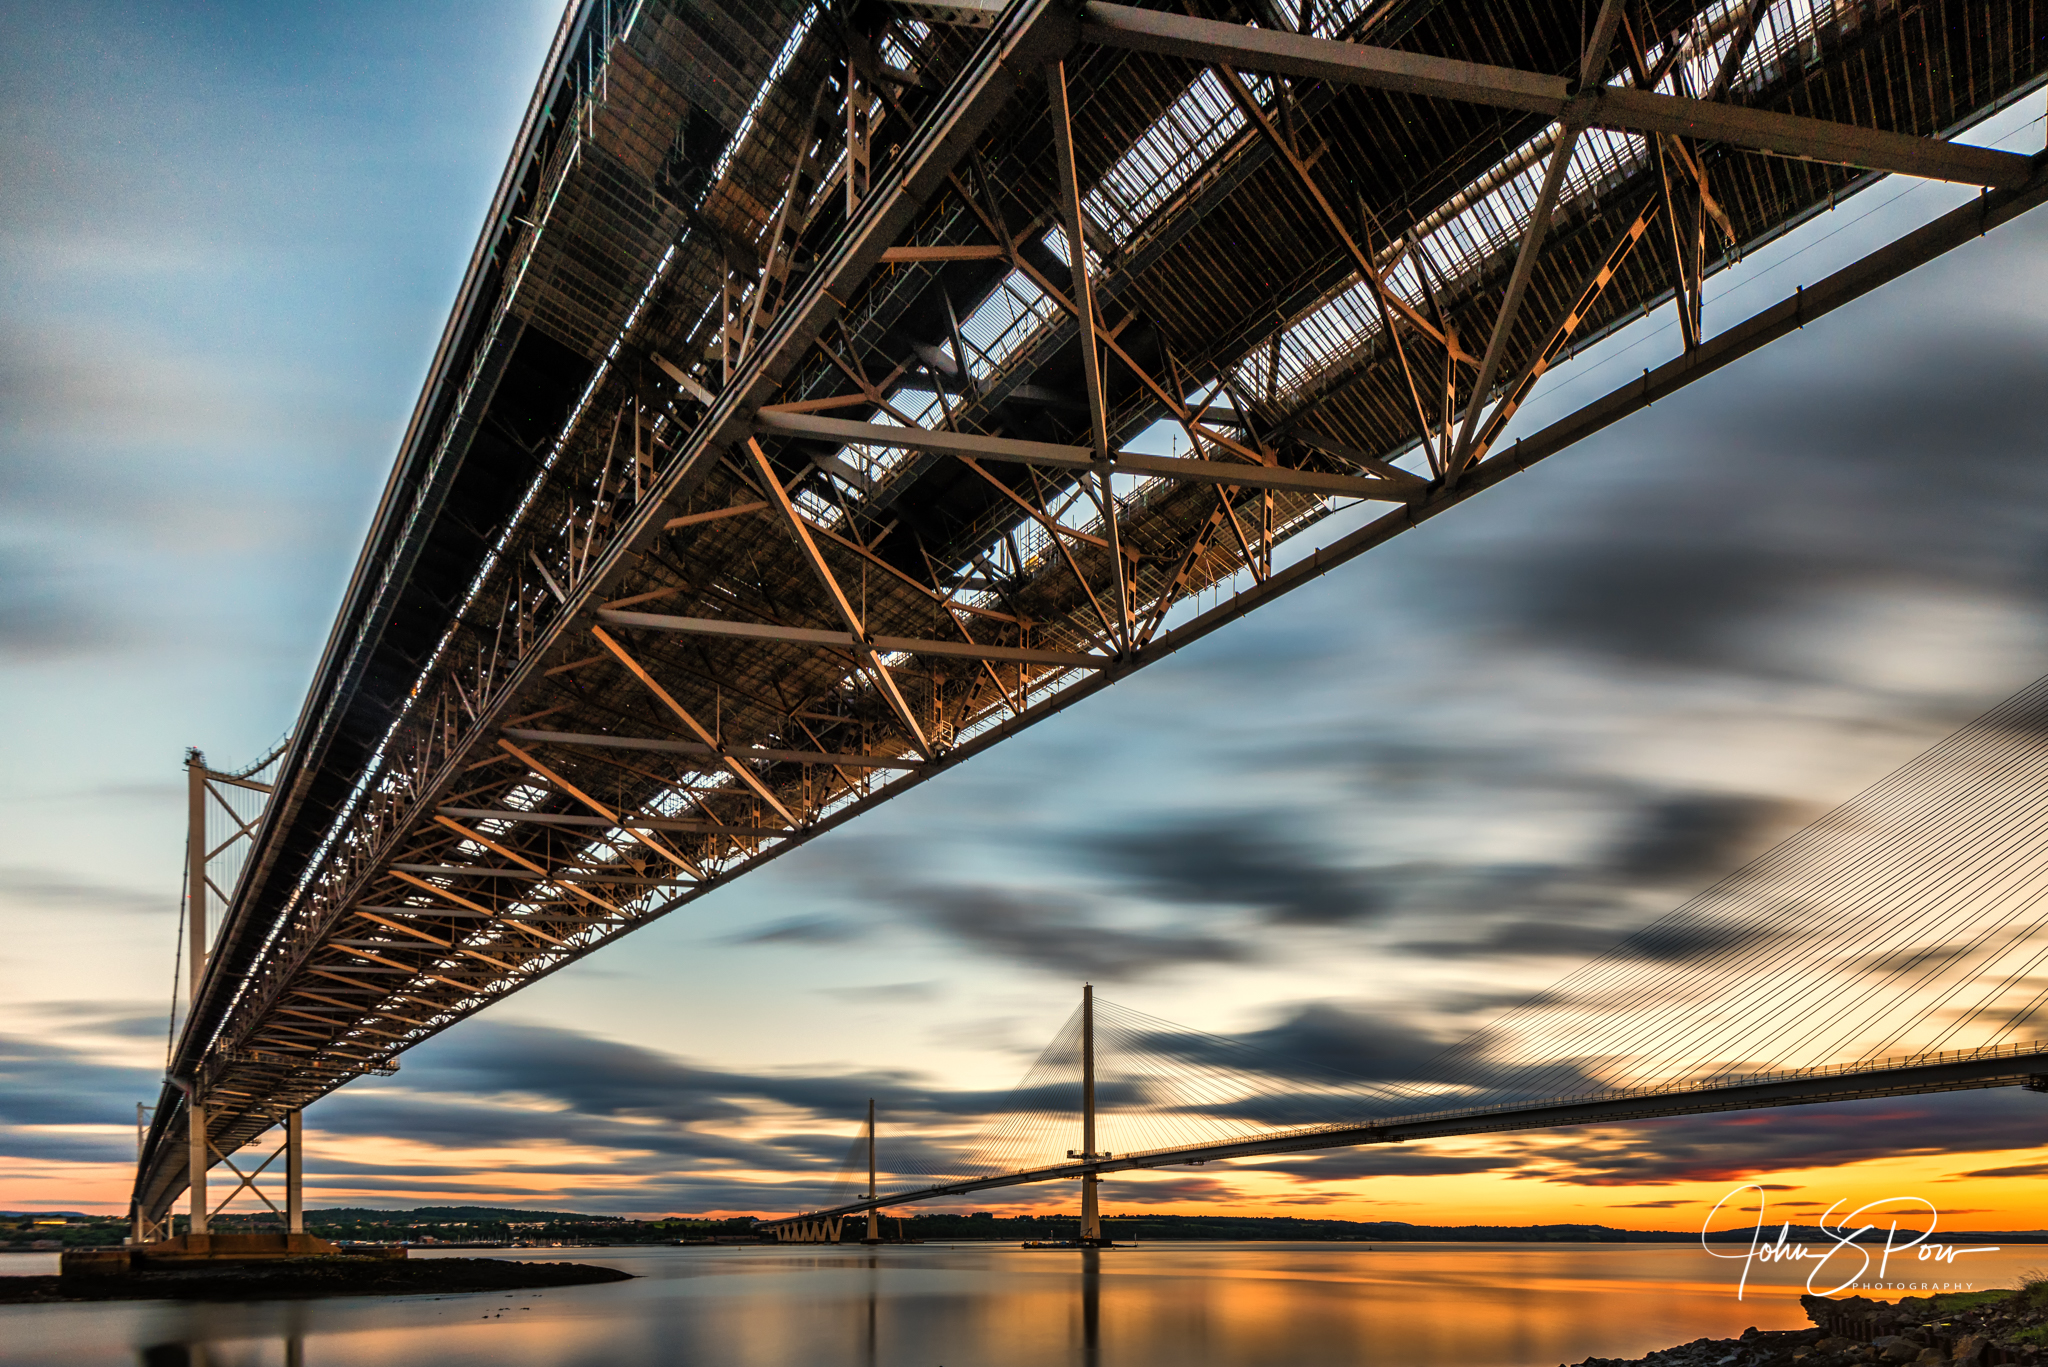 A different perspective of the Forth Road Bridge with the Queensferry Crossing.